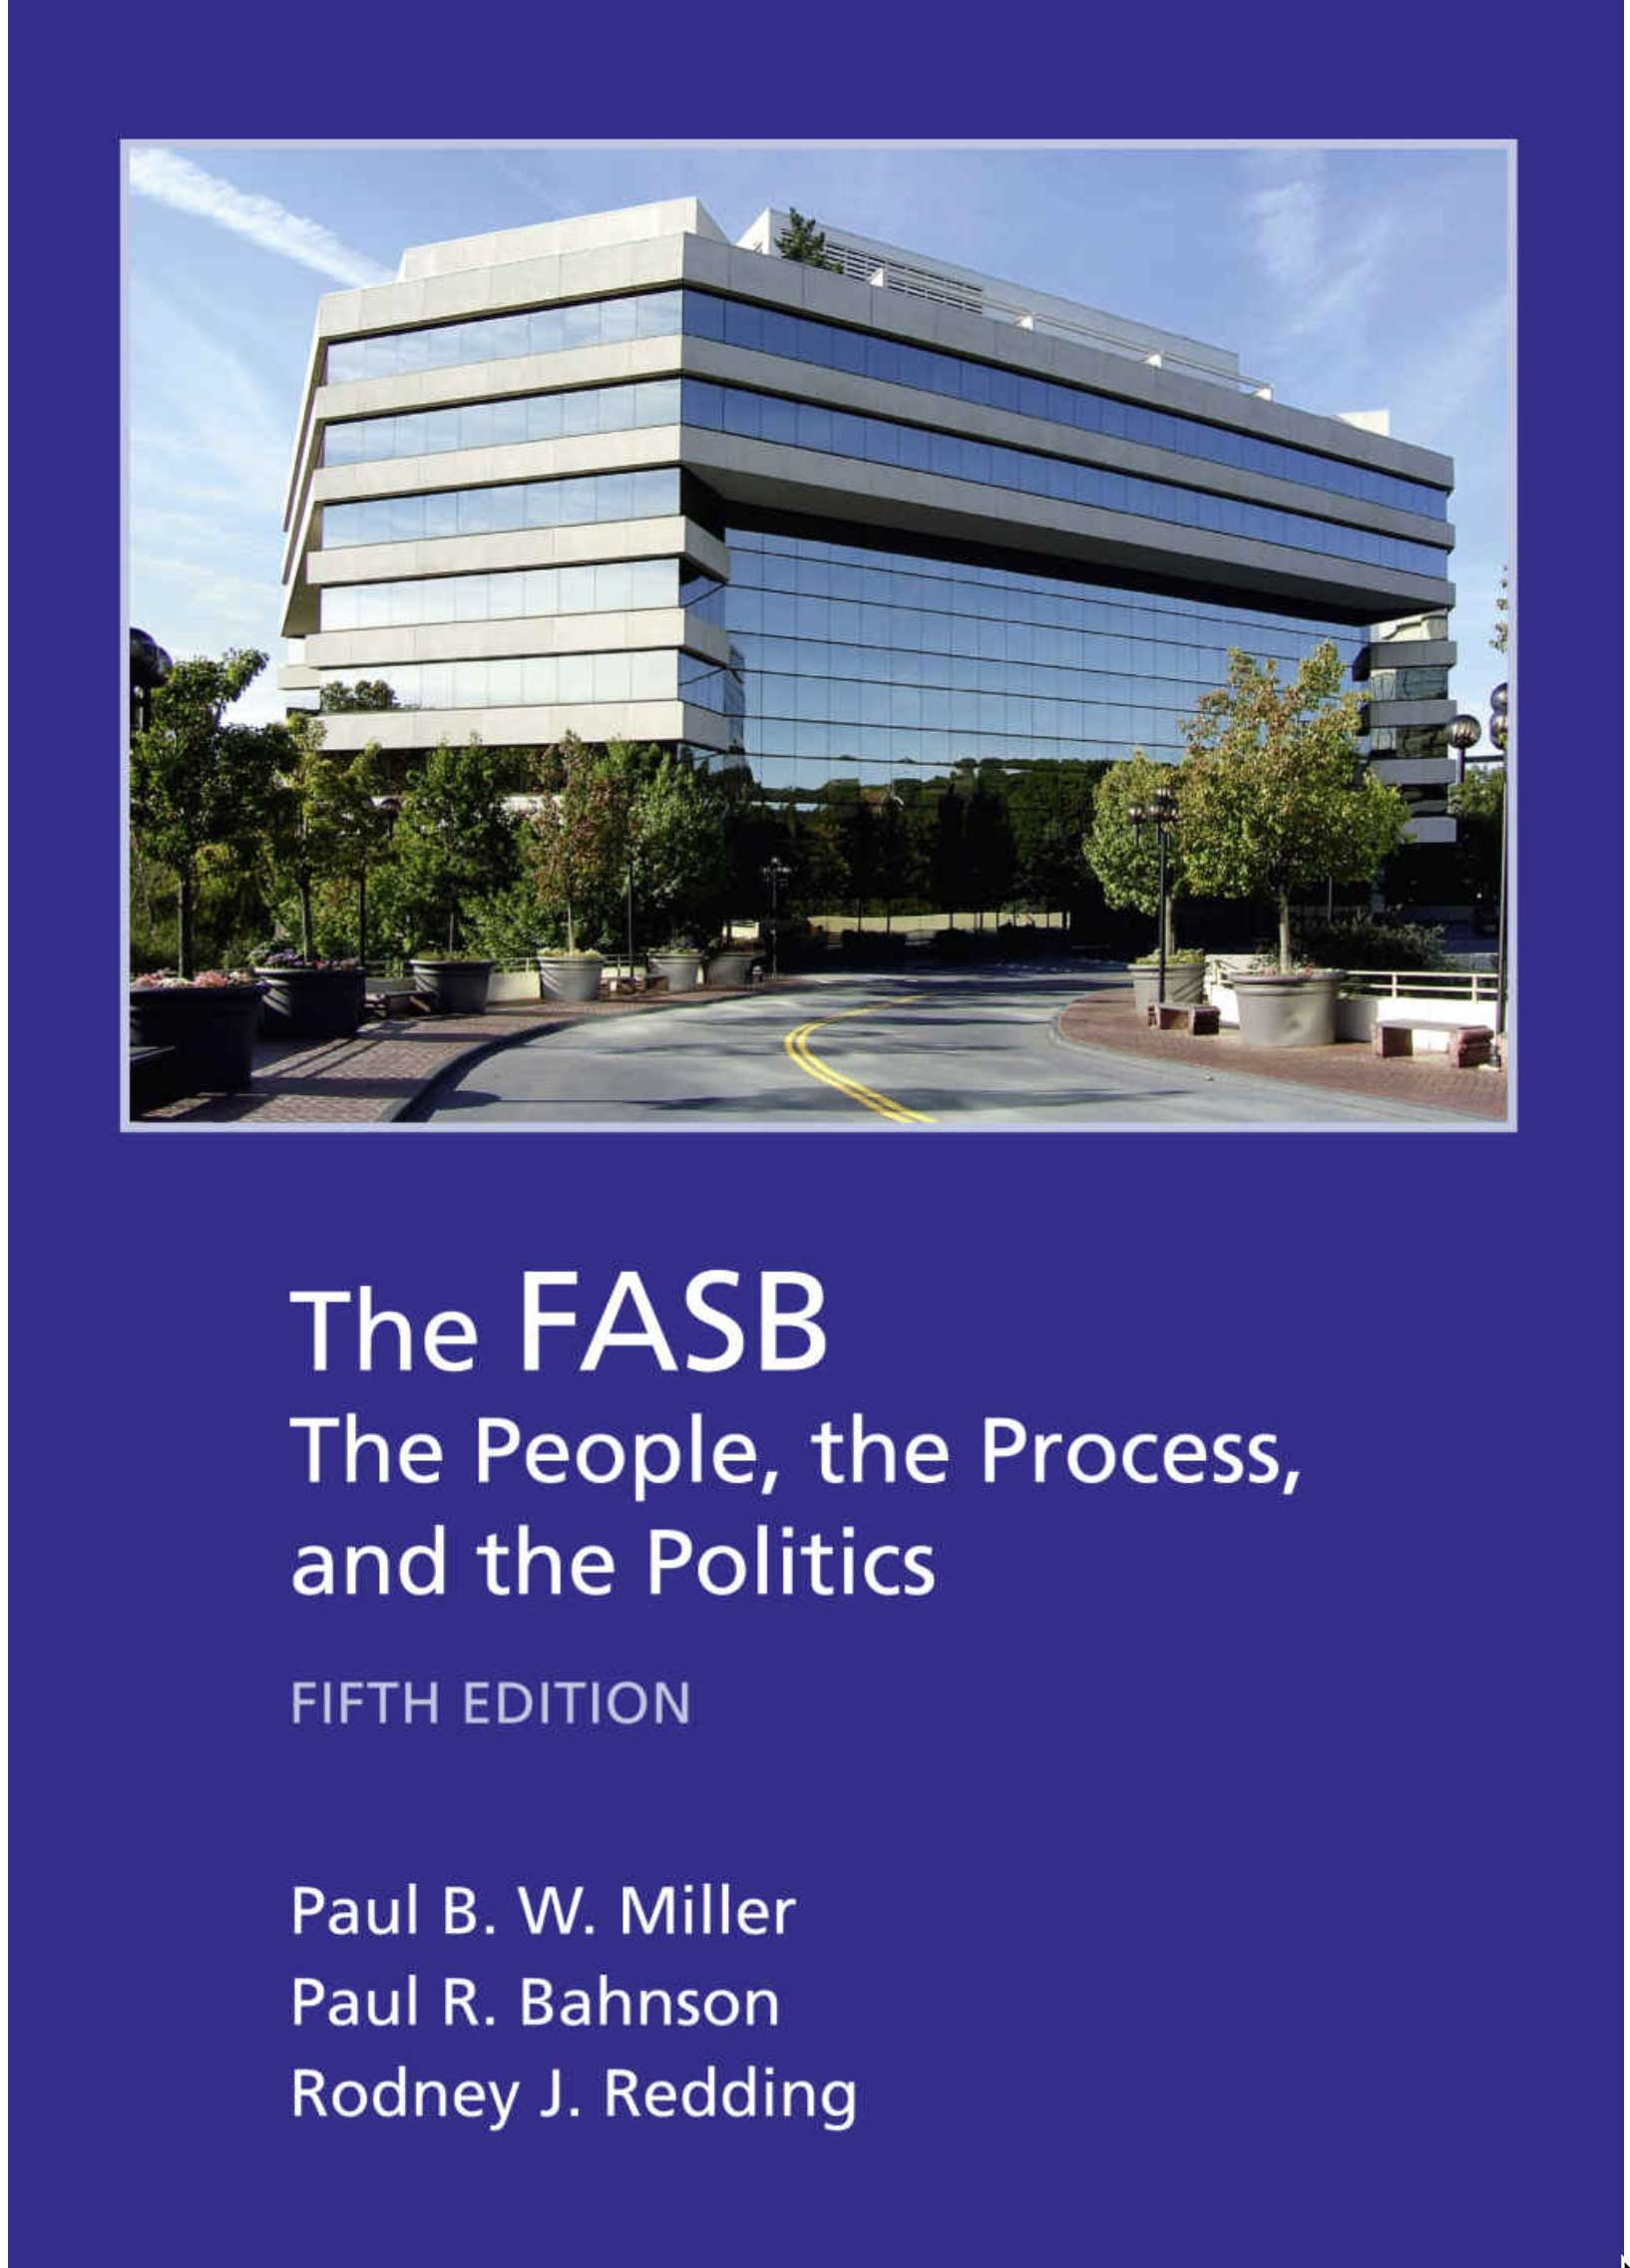 The FASB: The People, The Process, And The Politics – Miller, Bahnson, And Redding